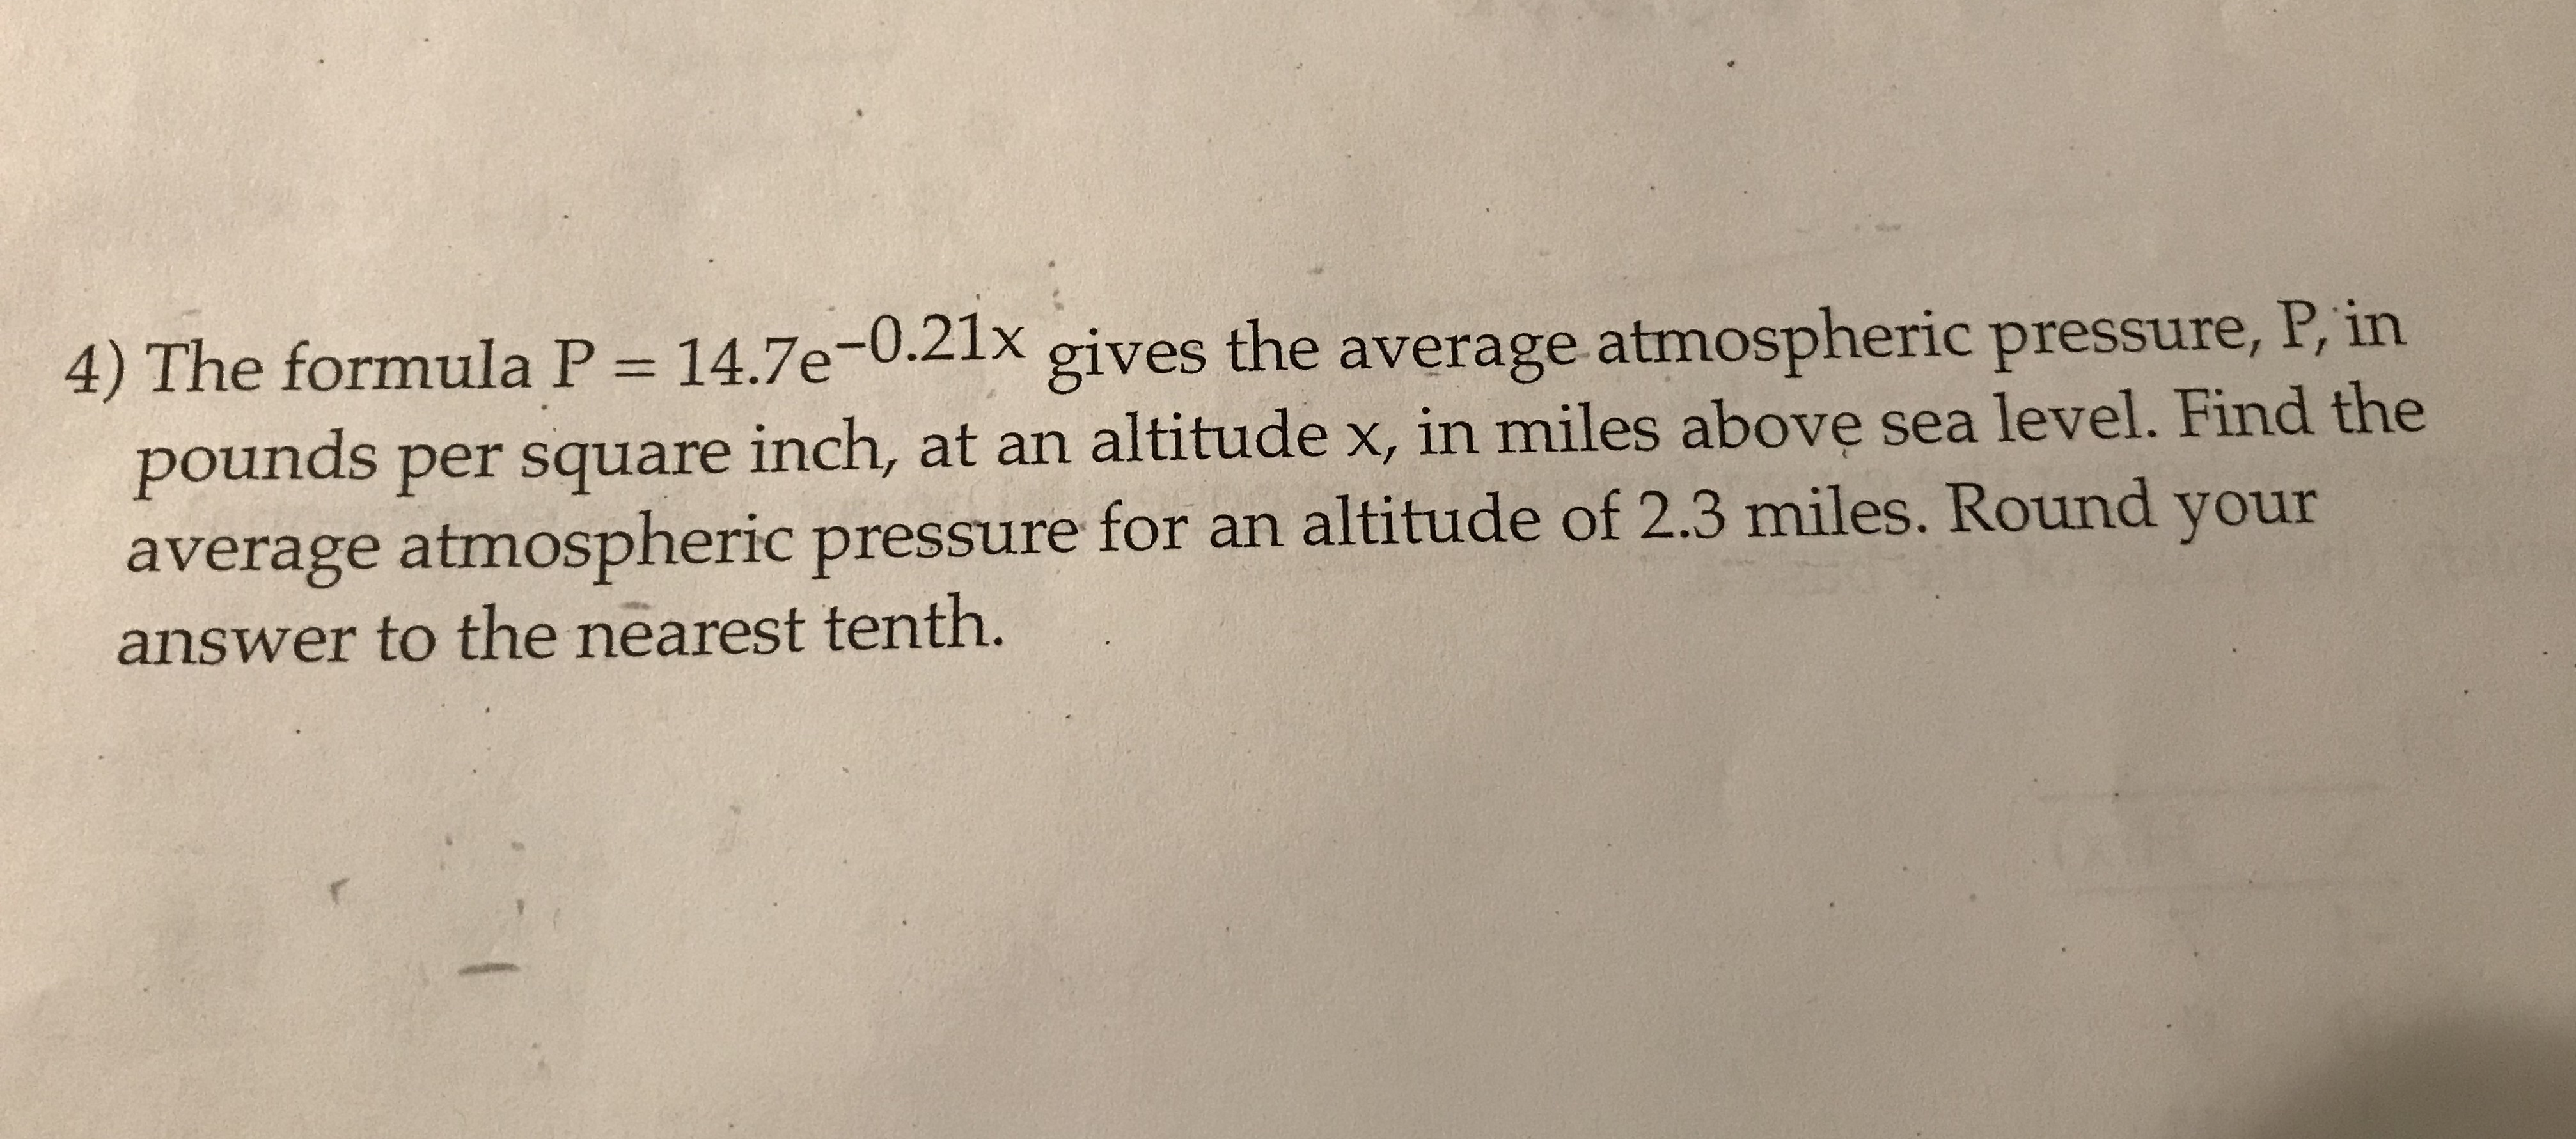 14.7e-0.21x 4) The formula P the average atmospheric pressure, P, in gives pounds per square inch, at an altitude x, in miles above sea level. Find the average atmospheric pressure for an altitude of 2.3 miles. Round your answer to the nearest tenth.